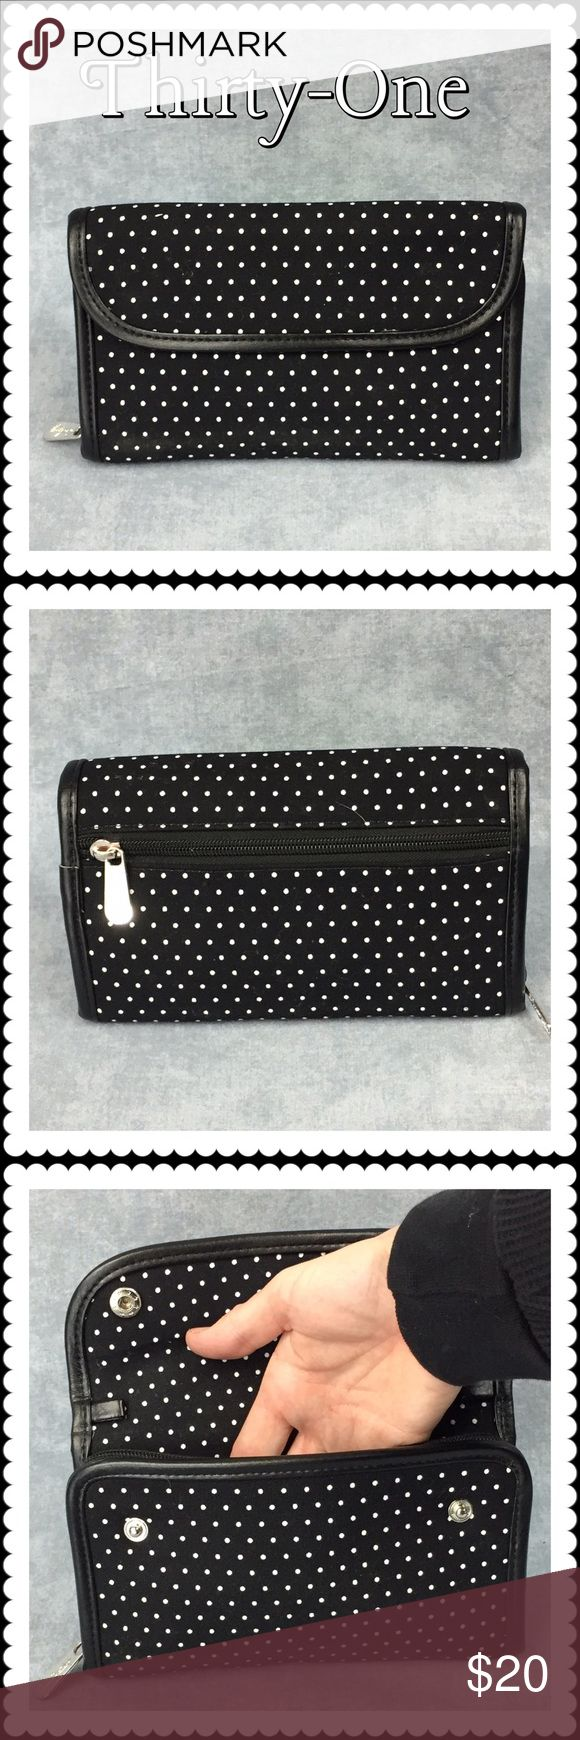 👜 Thirty One Every Wear Wallet (4095) 👜 Thirty One Every Wear Wallet 👜 Black with small white dots, one outer zip pocket, snap flap, inner one slide-in pocket, zippered compartment, one slide-in pocket, one zipper pocket, 8 card slots and an ID slot. In new and unused condition. Removable strap missing. Price reflects this. Thirty One Bags Wallets